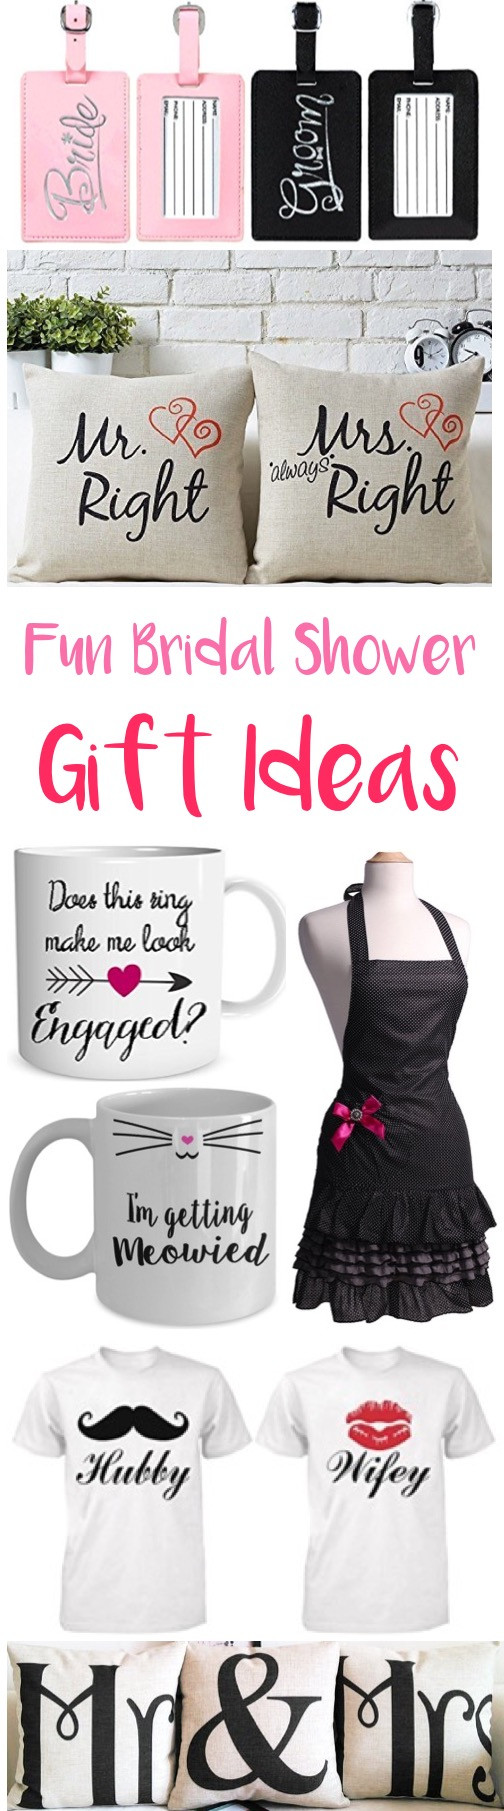 Best ideas about Bridal Shower Gift Ideas For Her . Save or Pin 29 Fun Bridal Shower Gifts for Her Ideas She ll Love Now.